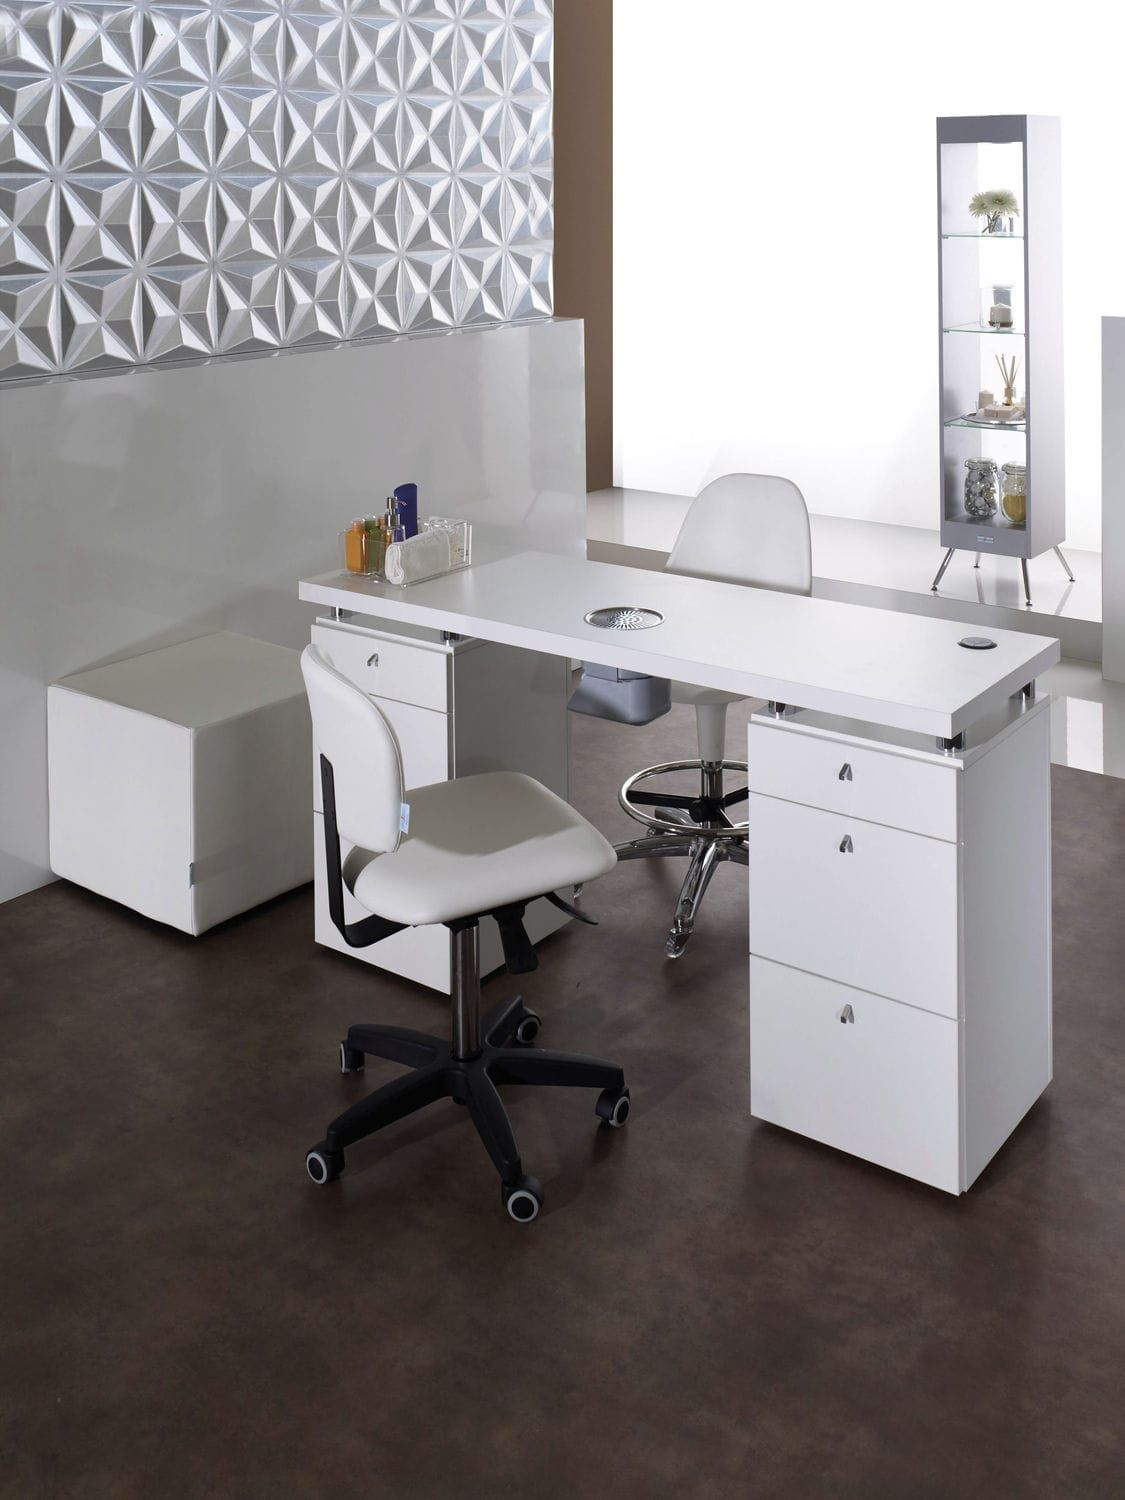 Manicure table with vacuum cleaner - LOGIC - Medical & Beauty | nail ...